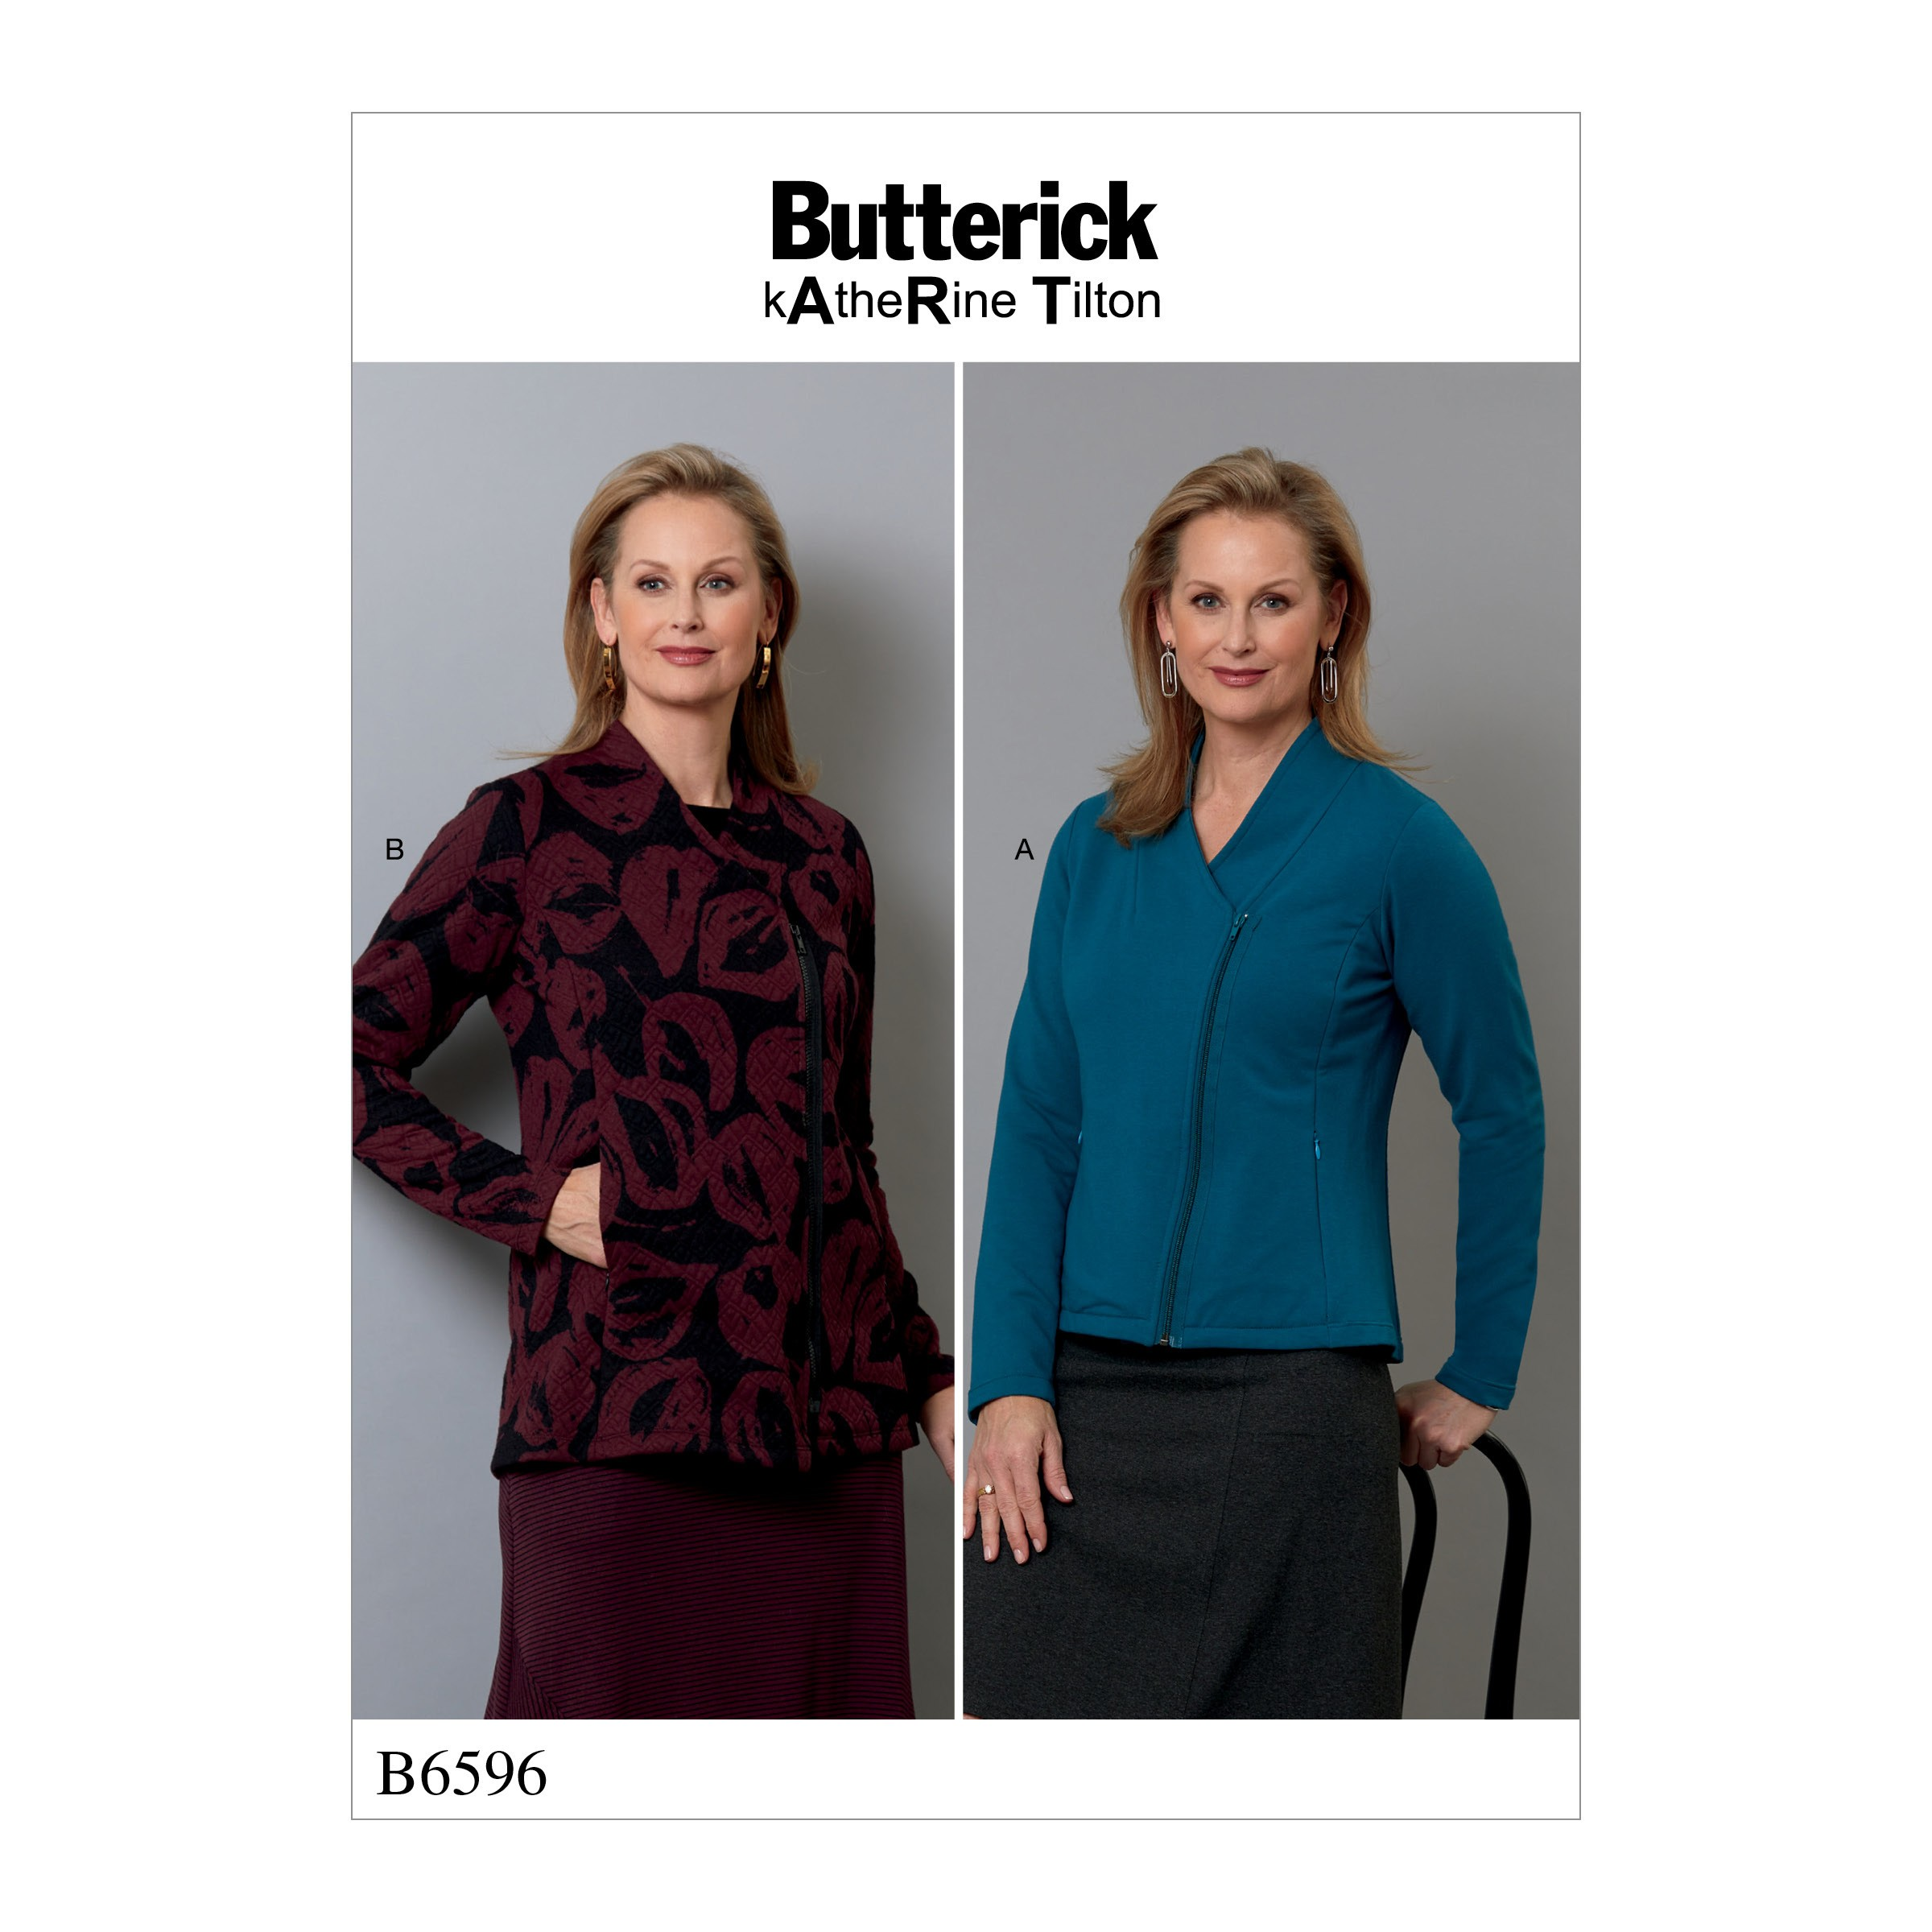 Butterick Sewing Pattern 6596 Misses' Fitted Jackets with Side Zip